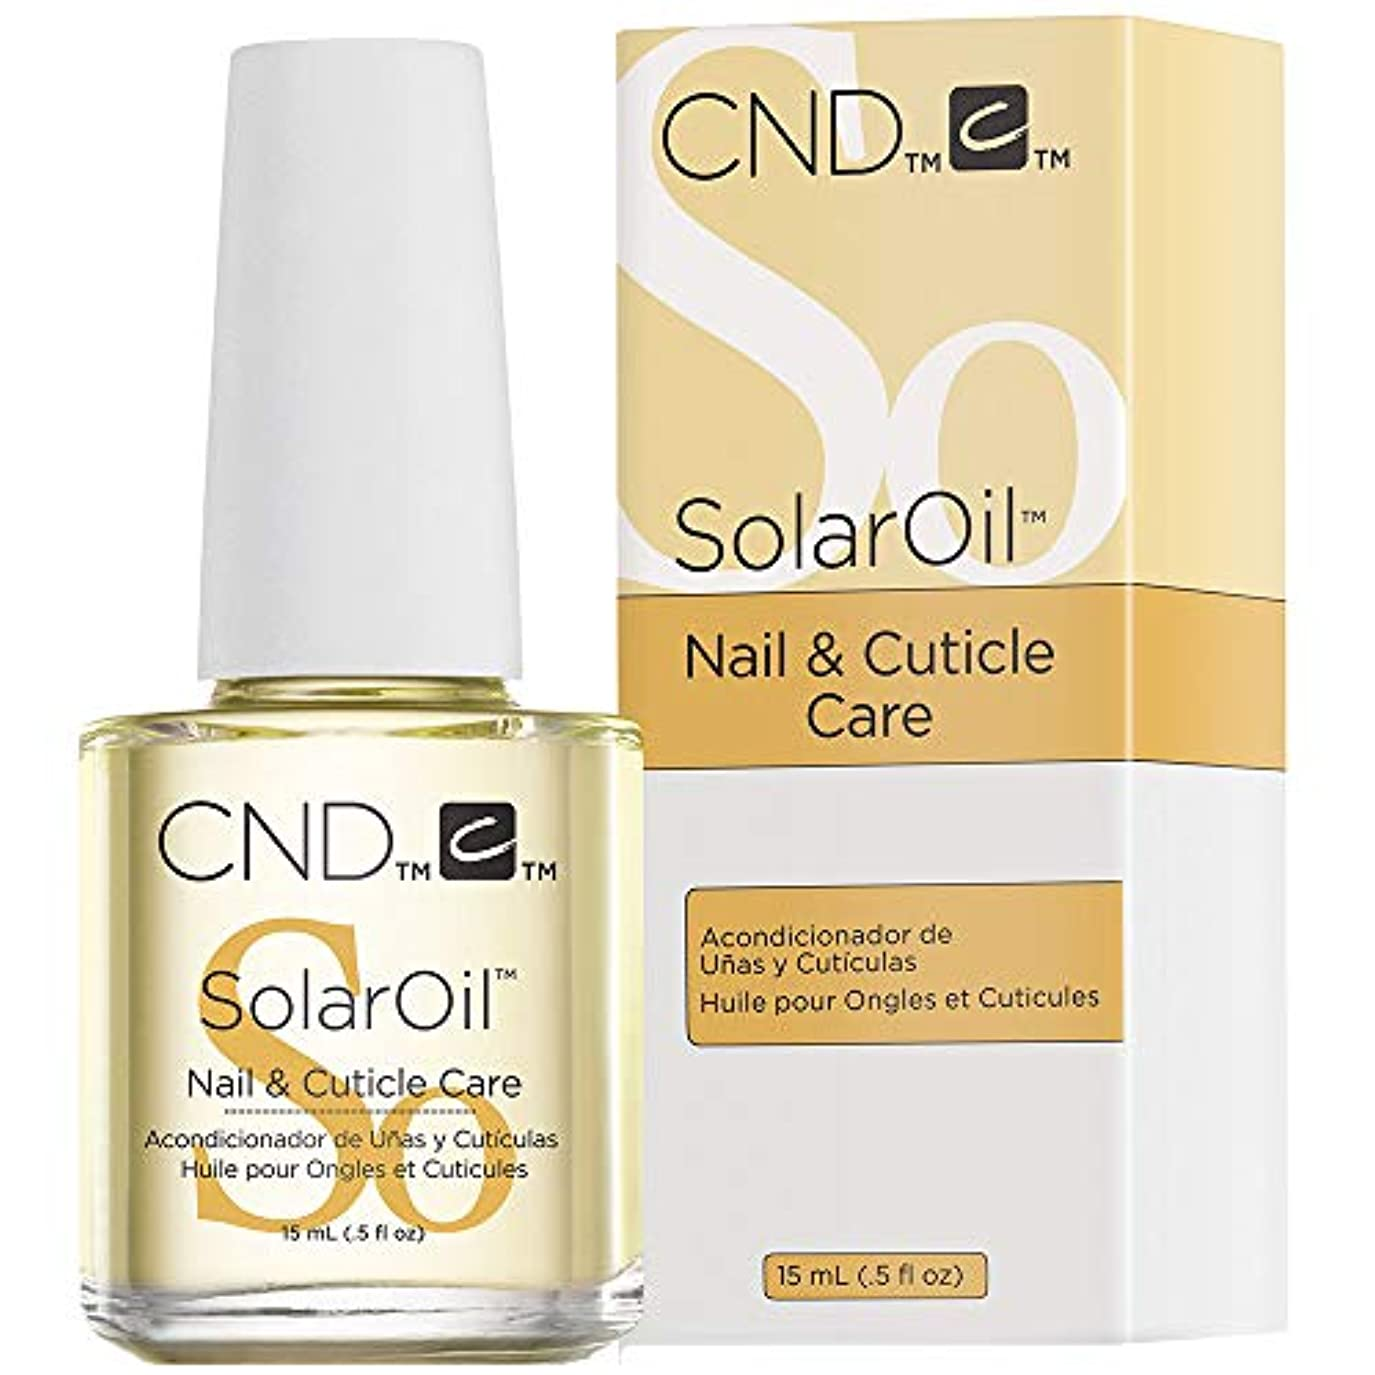 エレメンタルノイズダウンCND solar Oil nail and cuticle conditioner 15ml